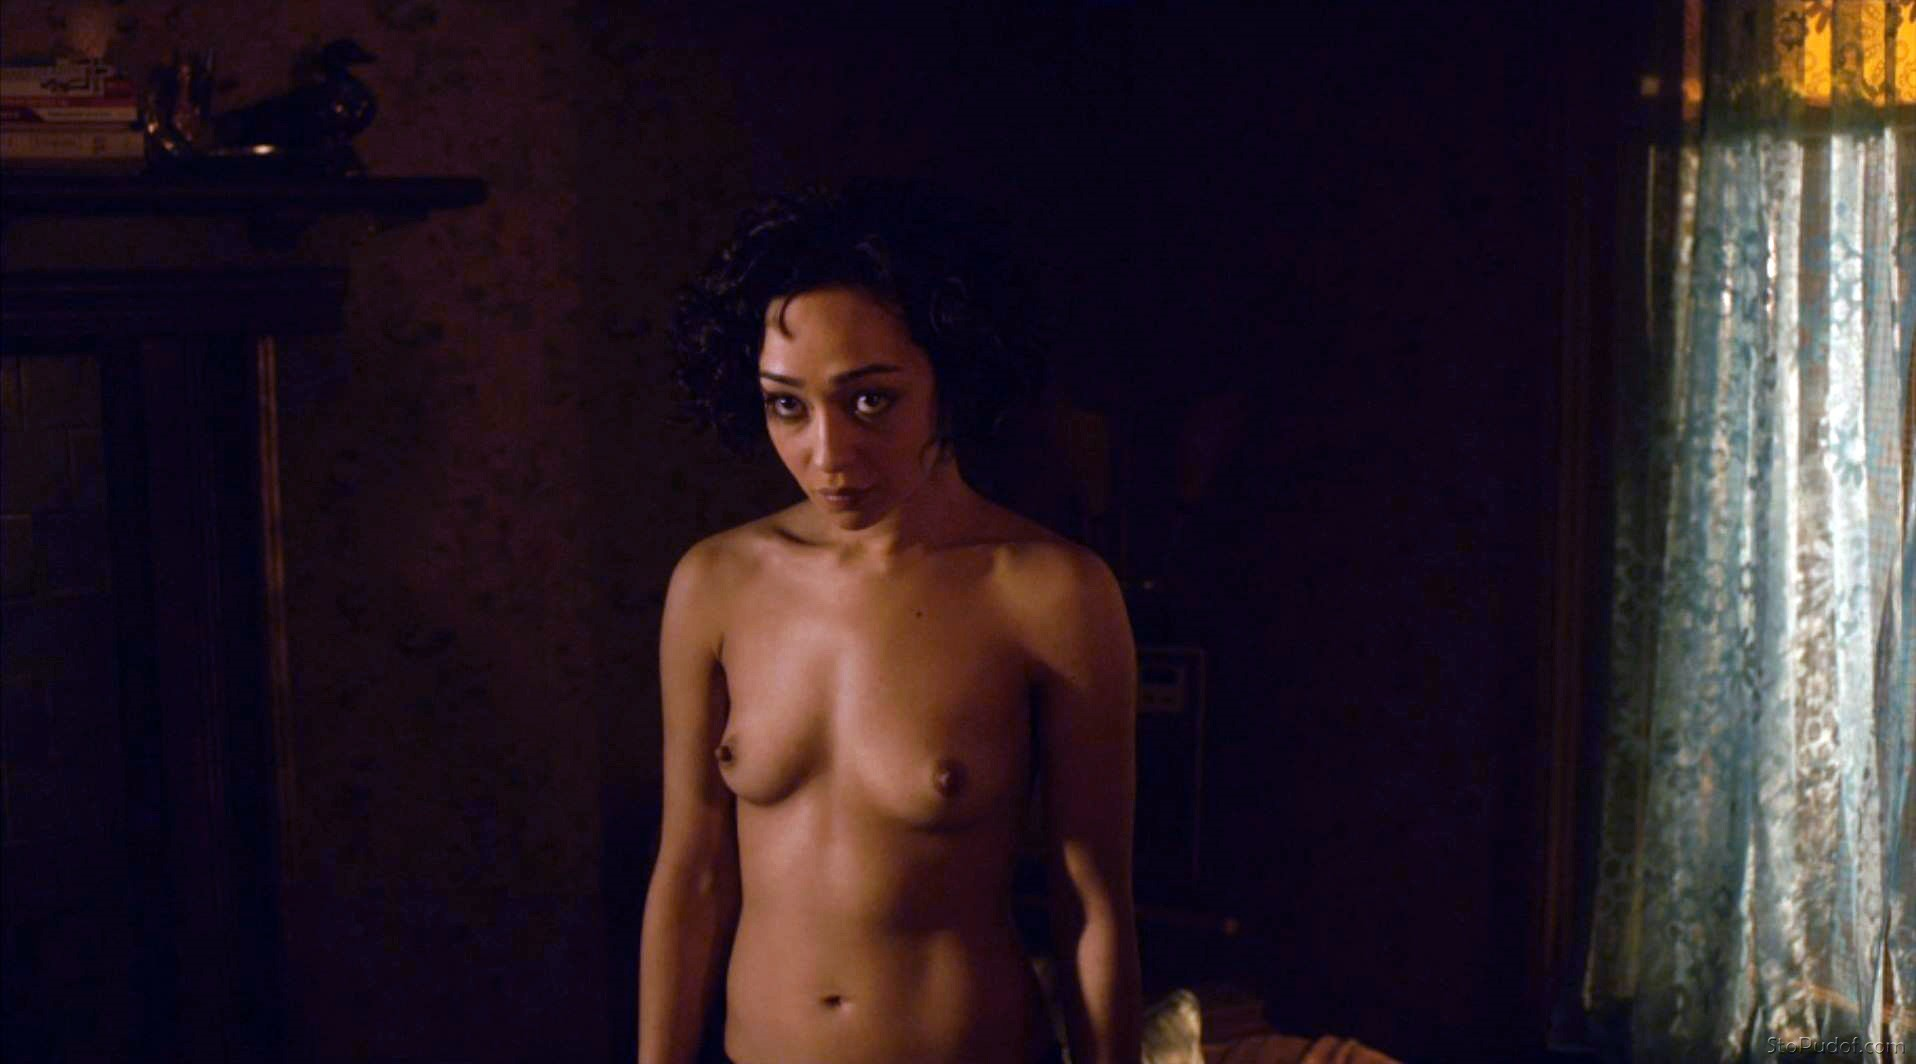 view nude pictures Ruth Negga - UkPhotoSafari